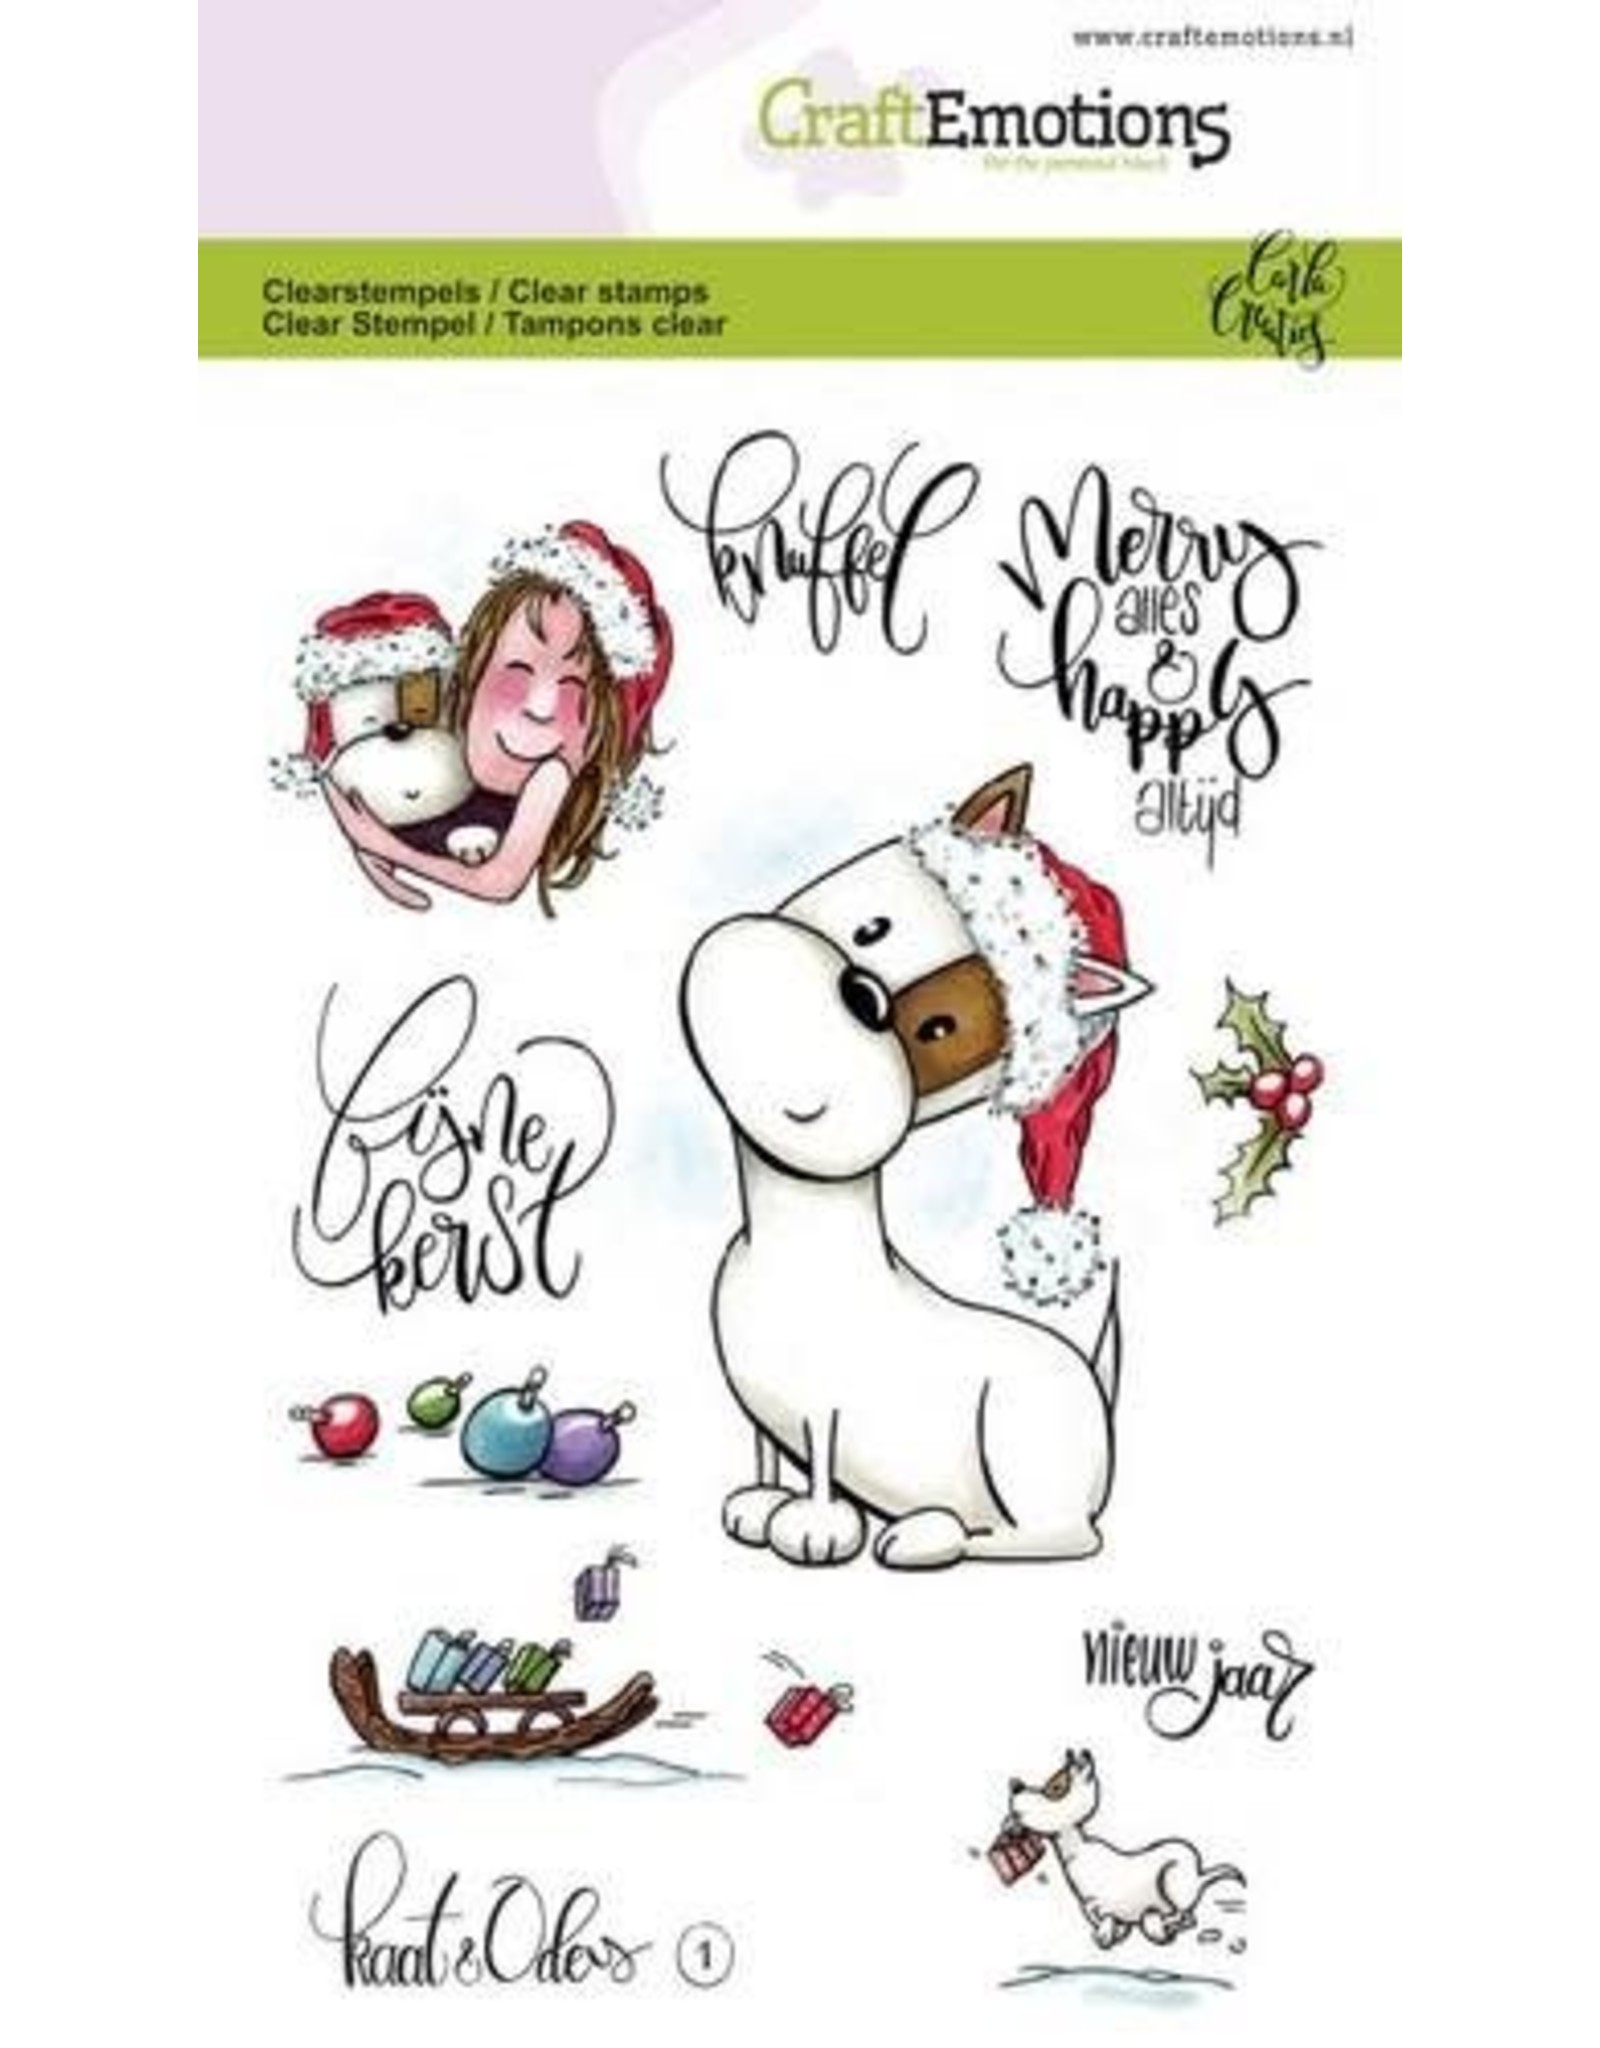 CraftEmotions clearstamps A6 - Kaat en Odey 1 (NL)